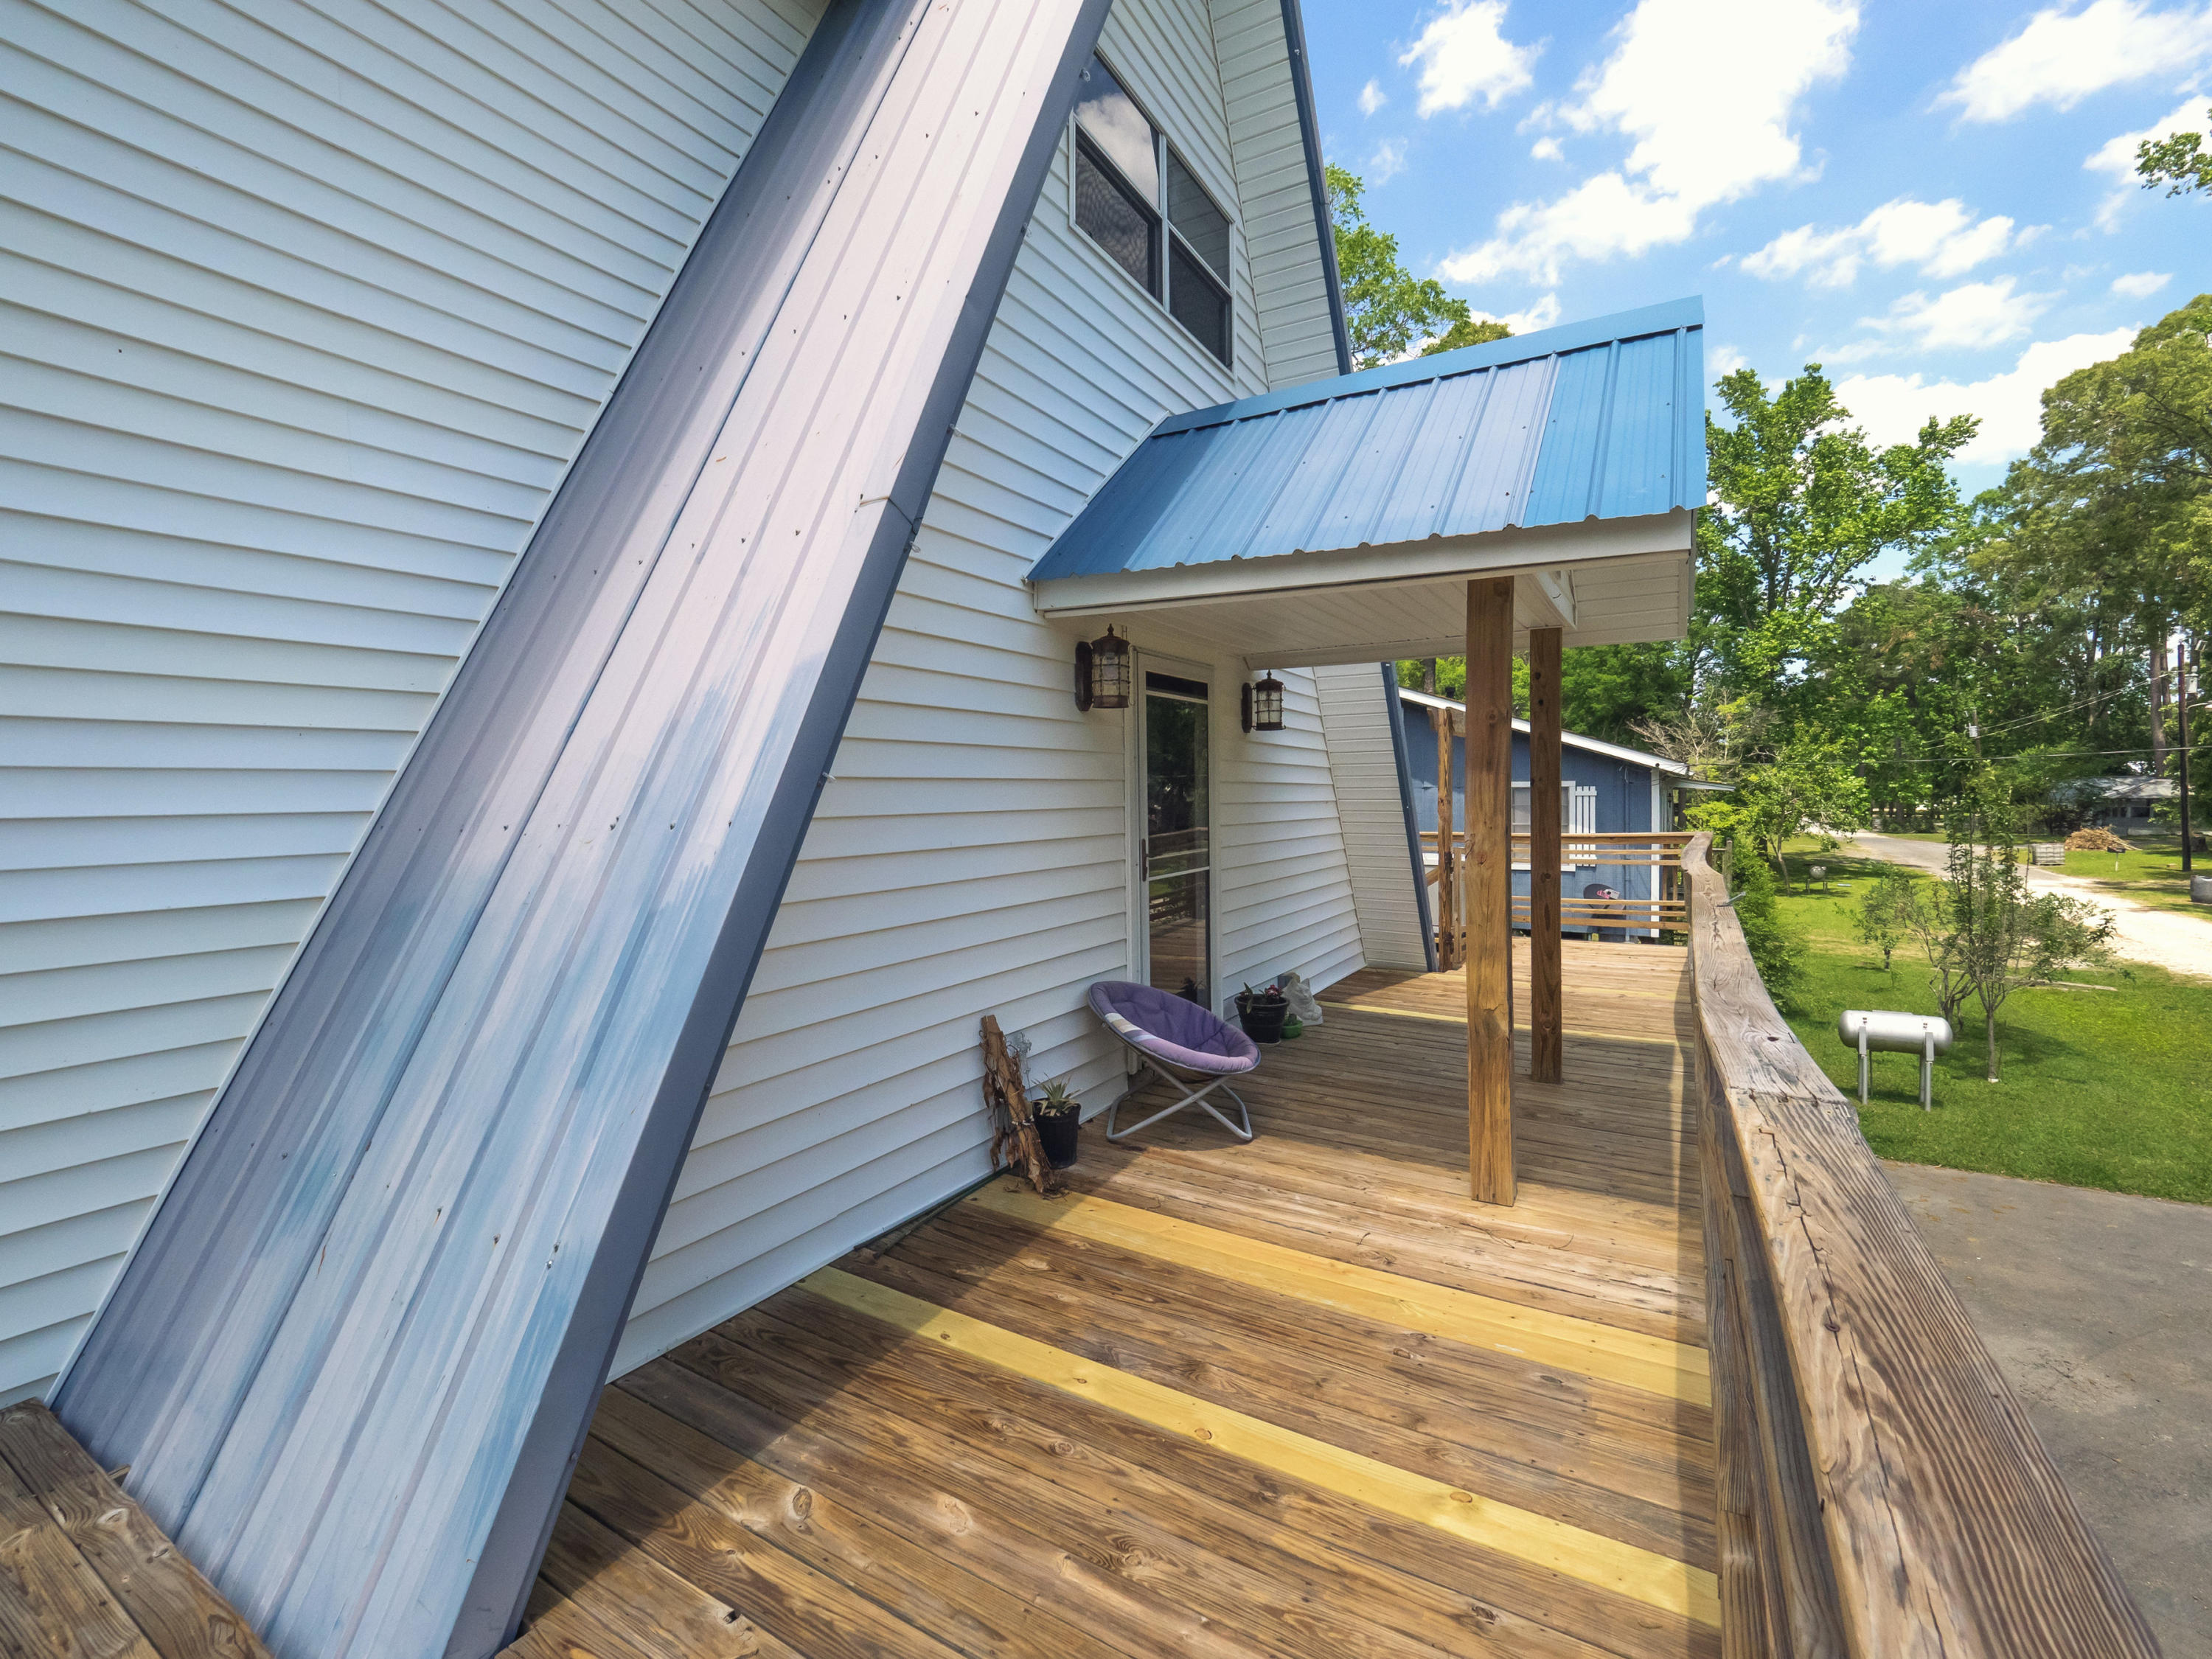 DeRidder home for sale, 254 Harris Dr, DeRidder LA - $189,900